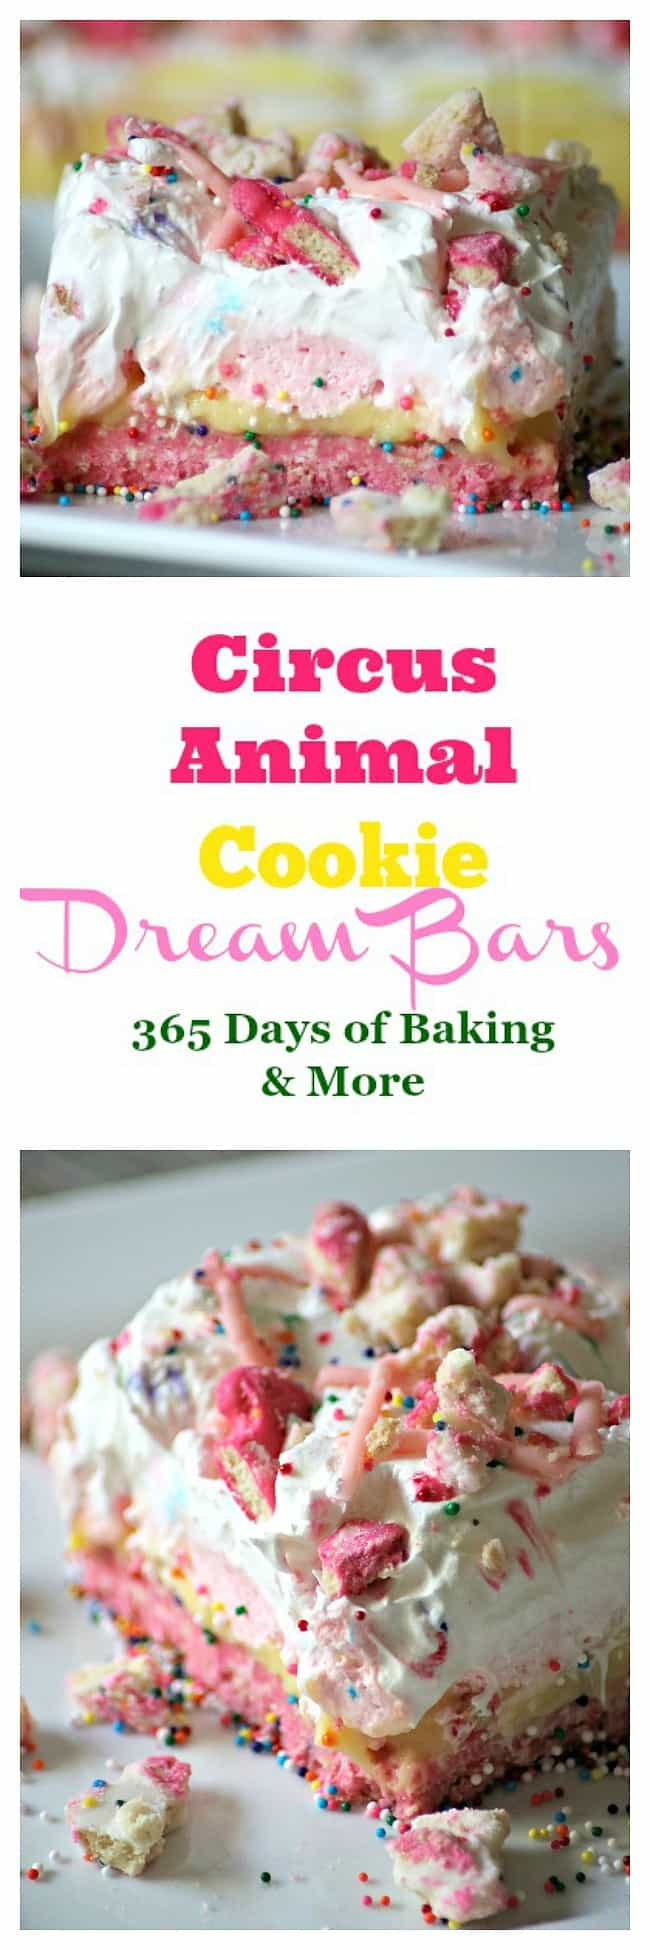 Circus Animal Cookie Dream Bars with a cookie crust and sweet, colorful layers are a fun, No Bake dessert that's sure to bring out the kid in anyone!